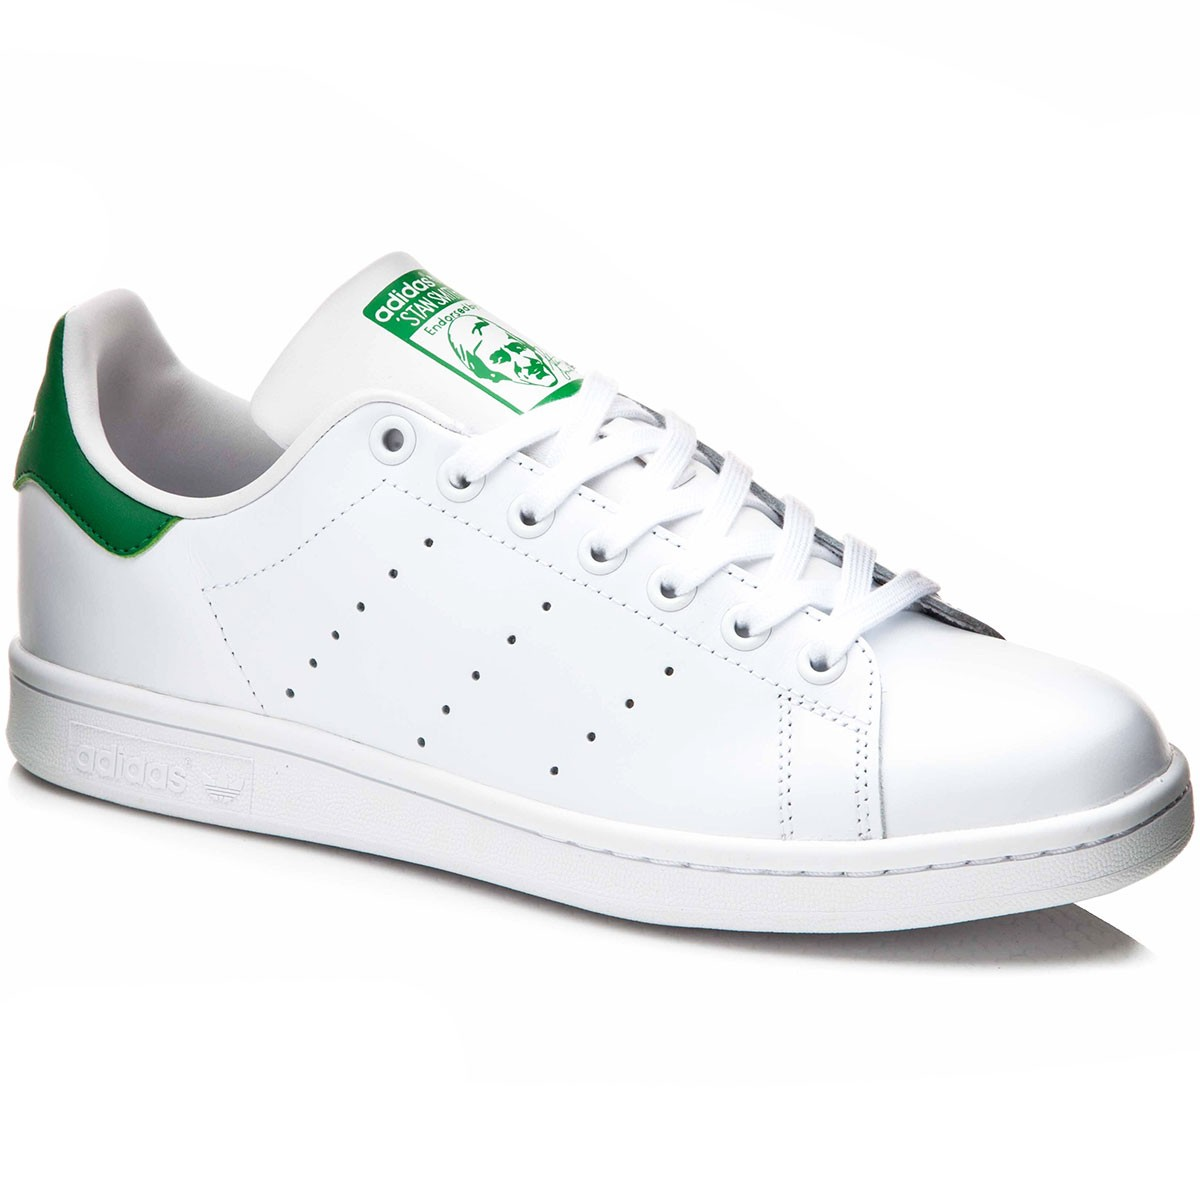 adidas by stan smith shoes